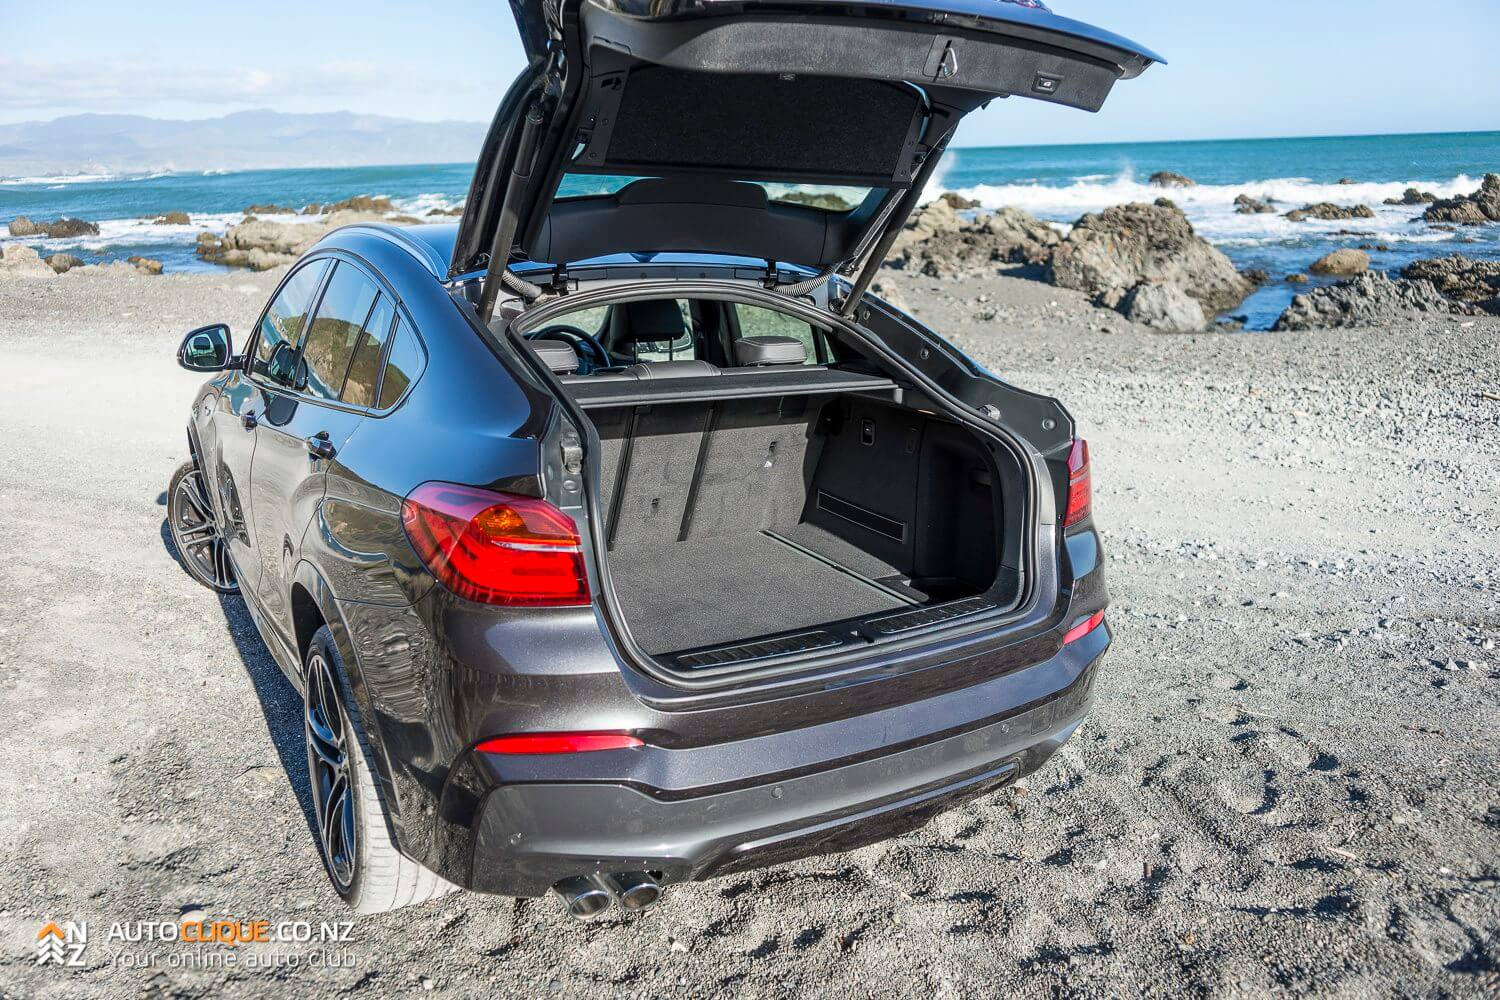 BMW-X4-35d-RaodTested-Review-9